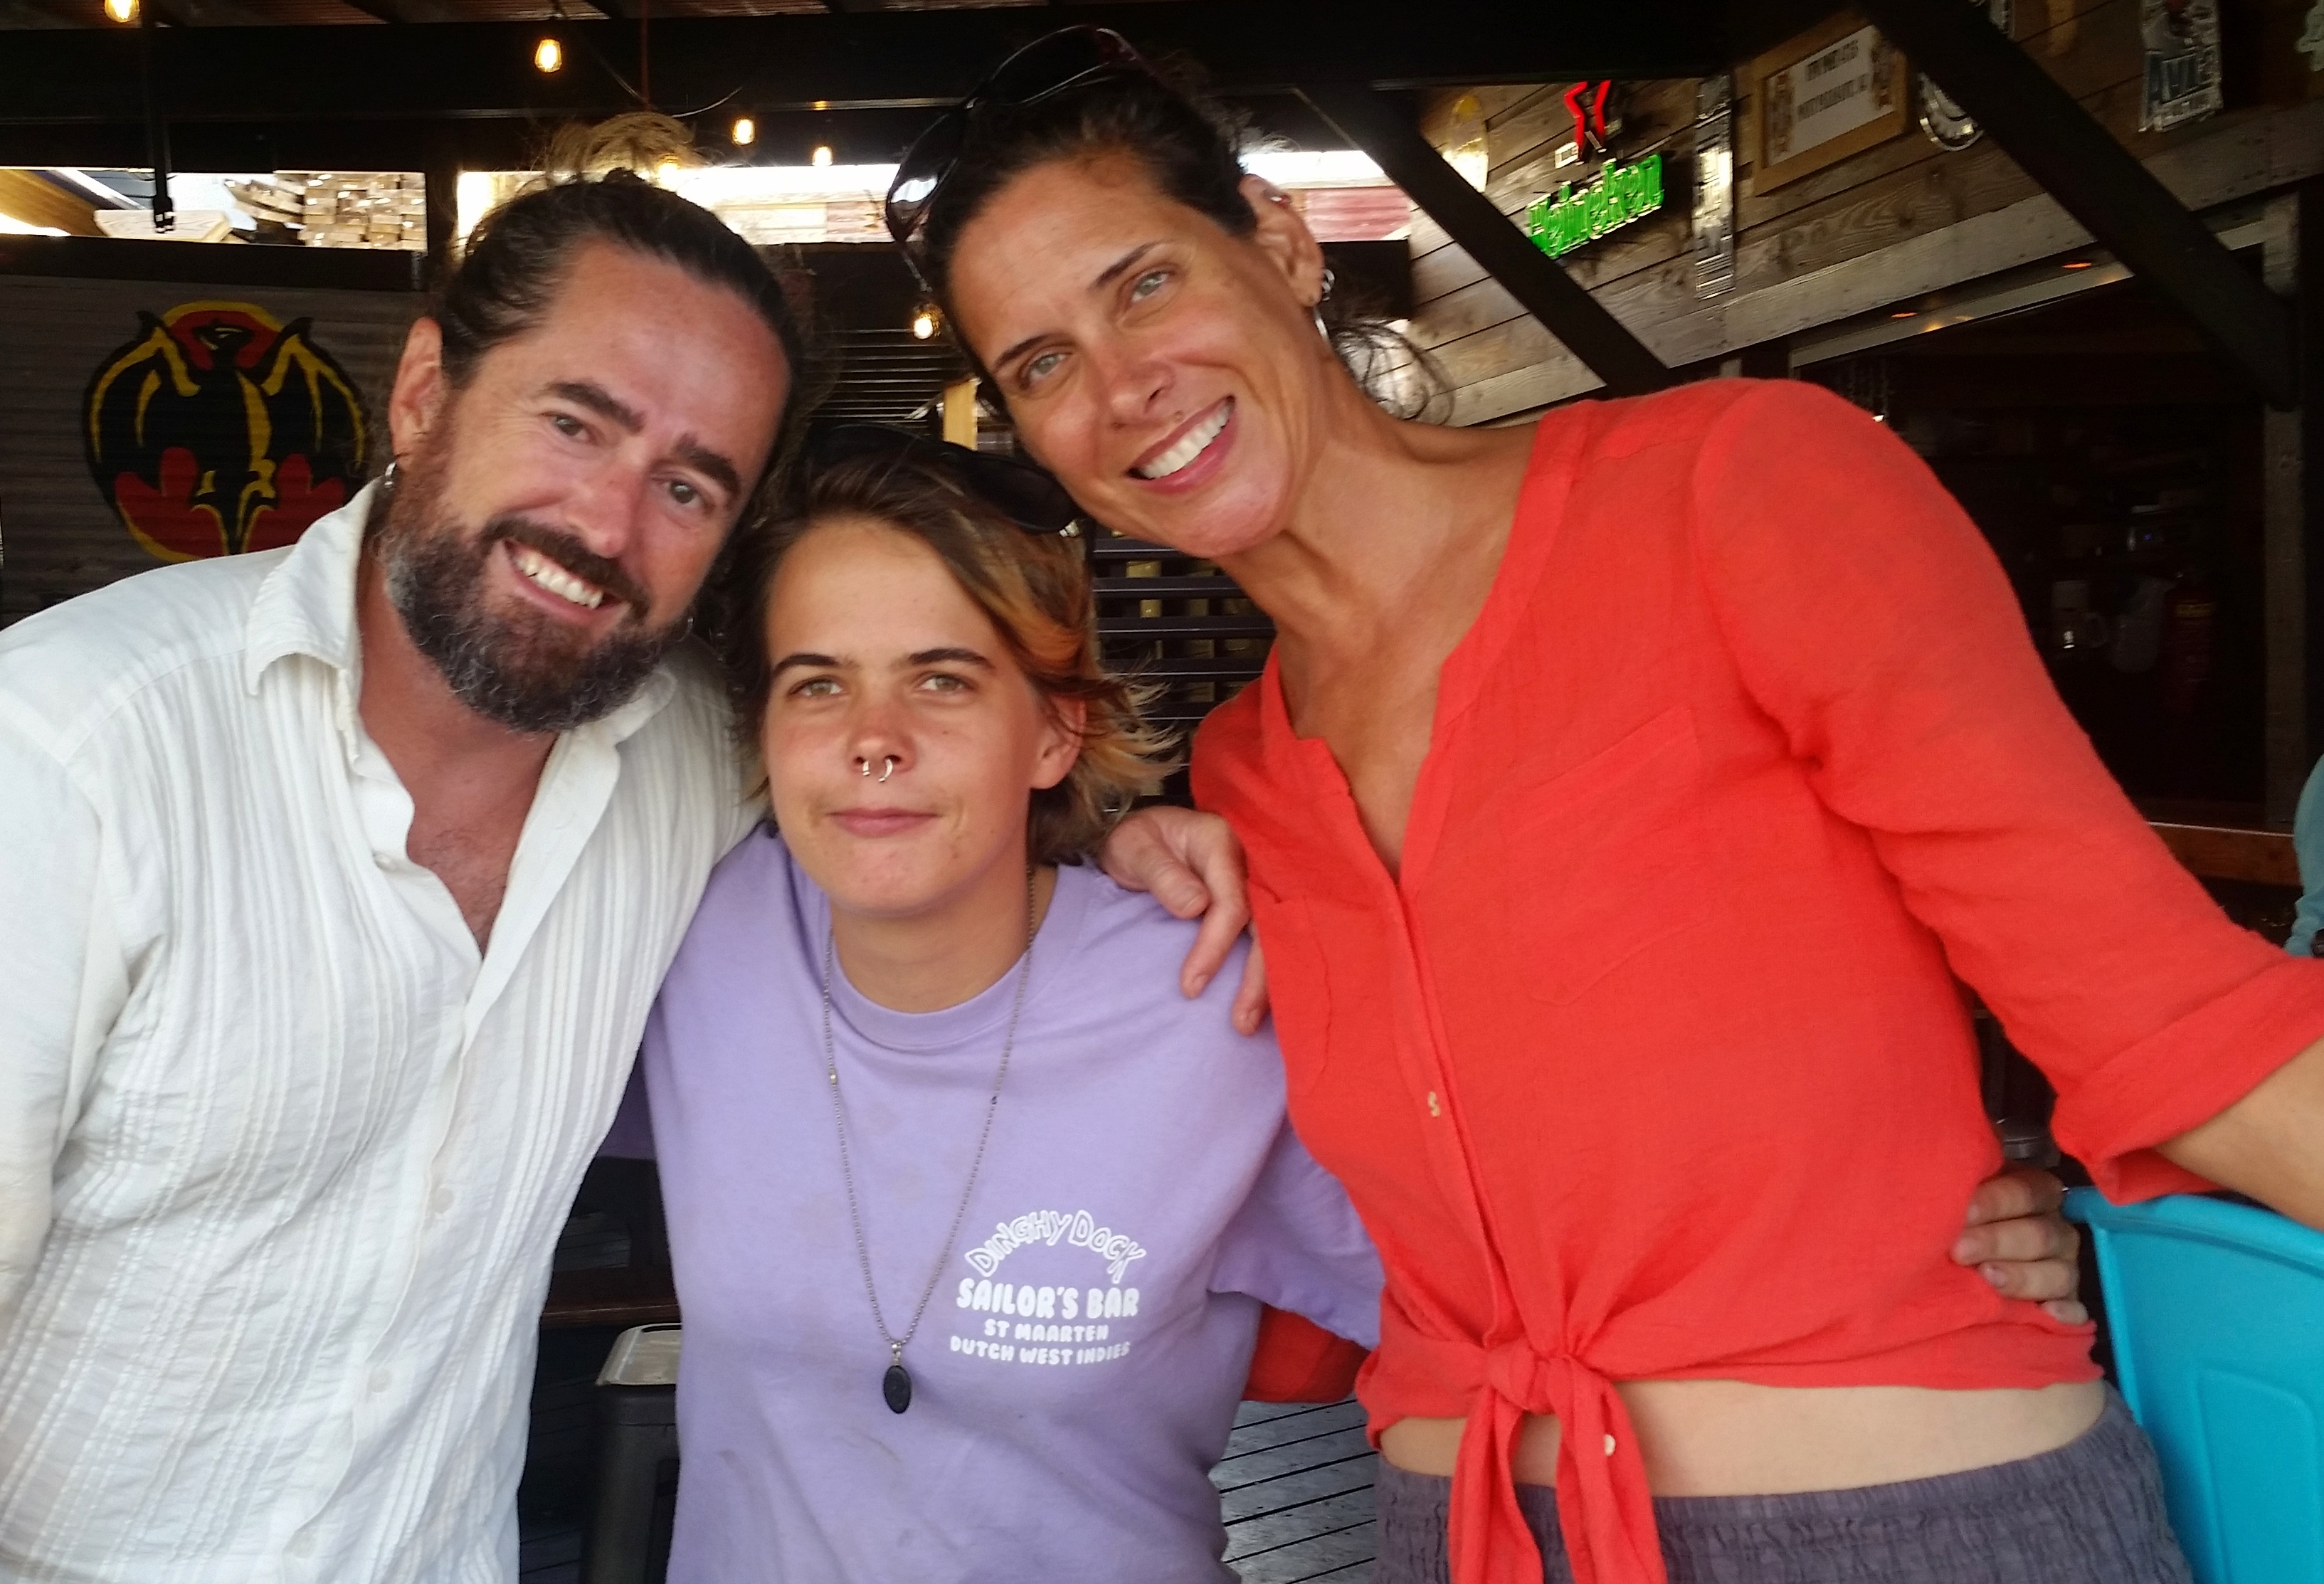 Saying farewell to Lauren, the bartender at our St. Martin hangout, The Dinghy Dock